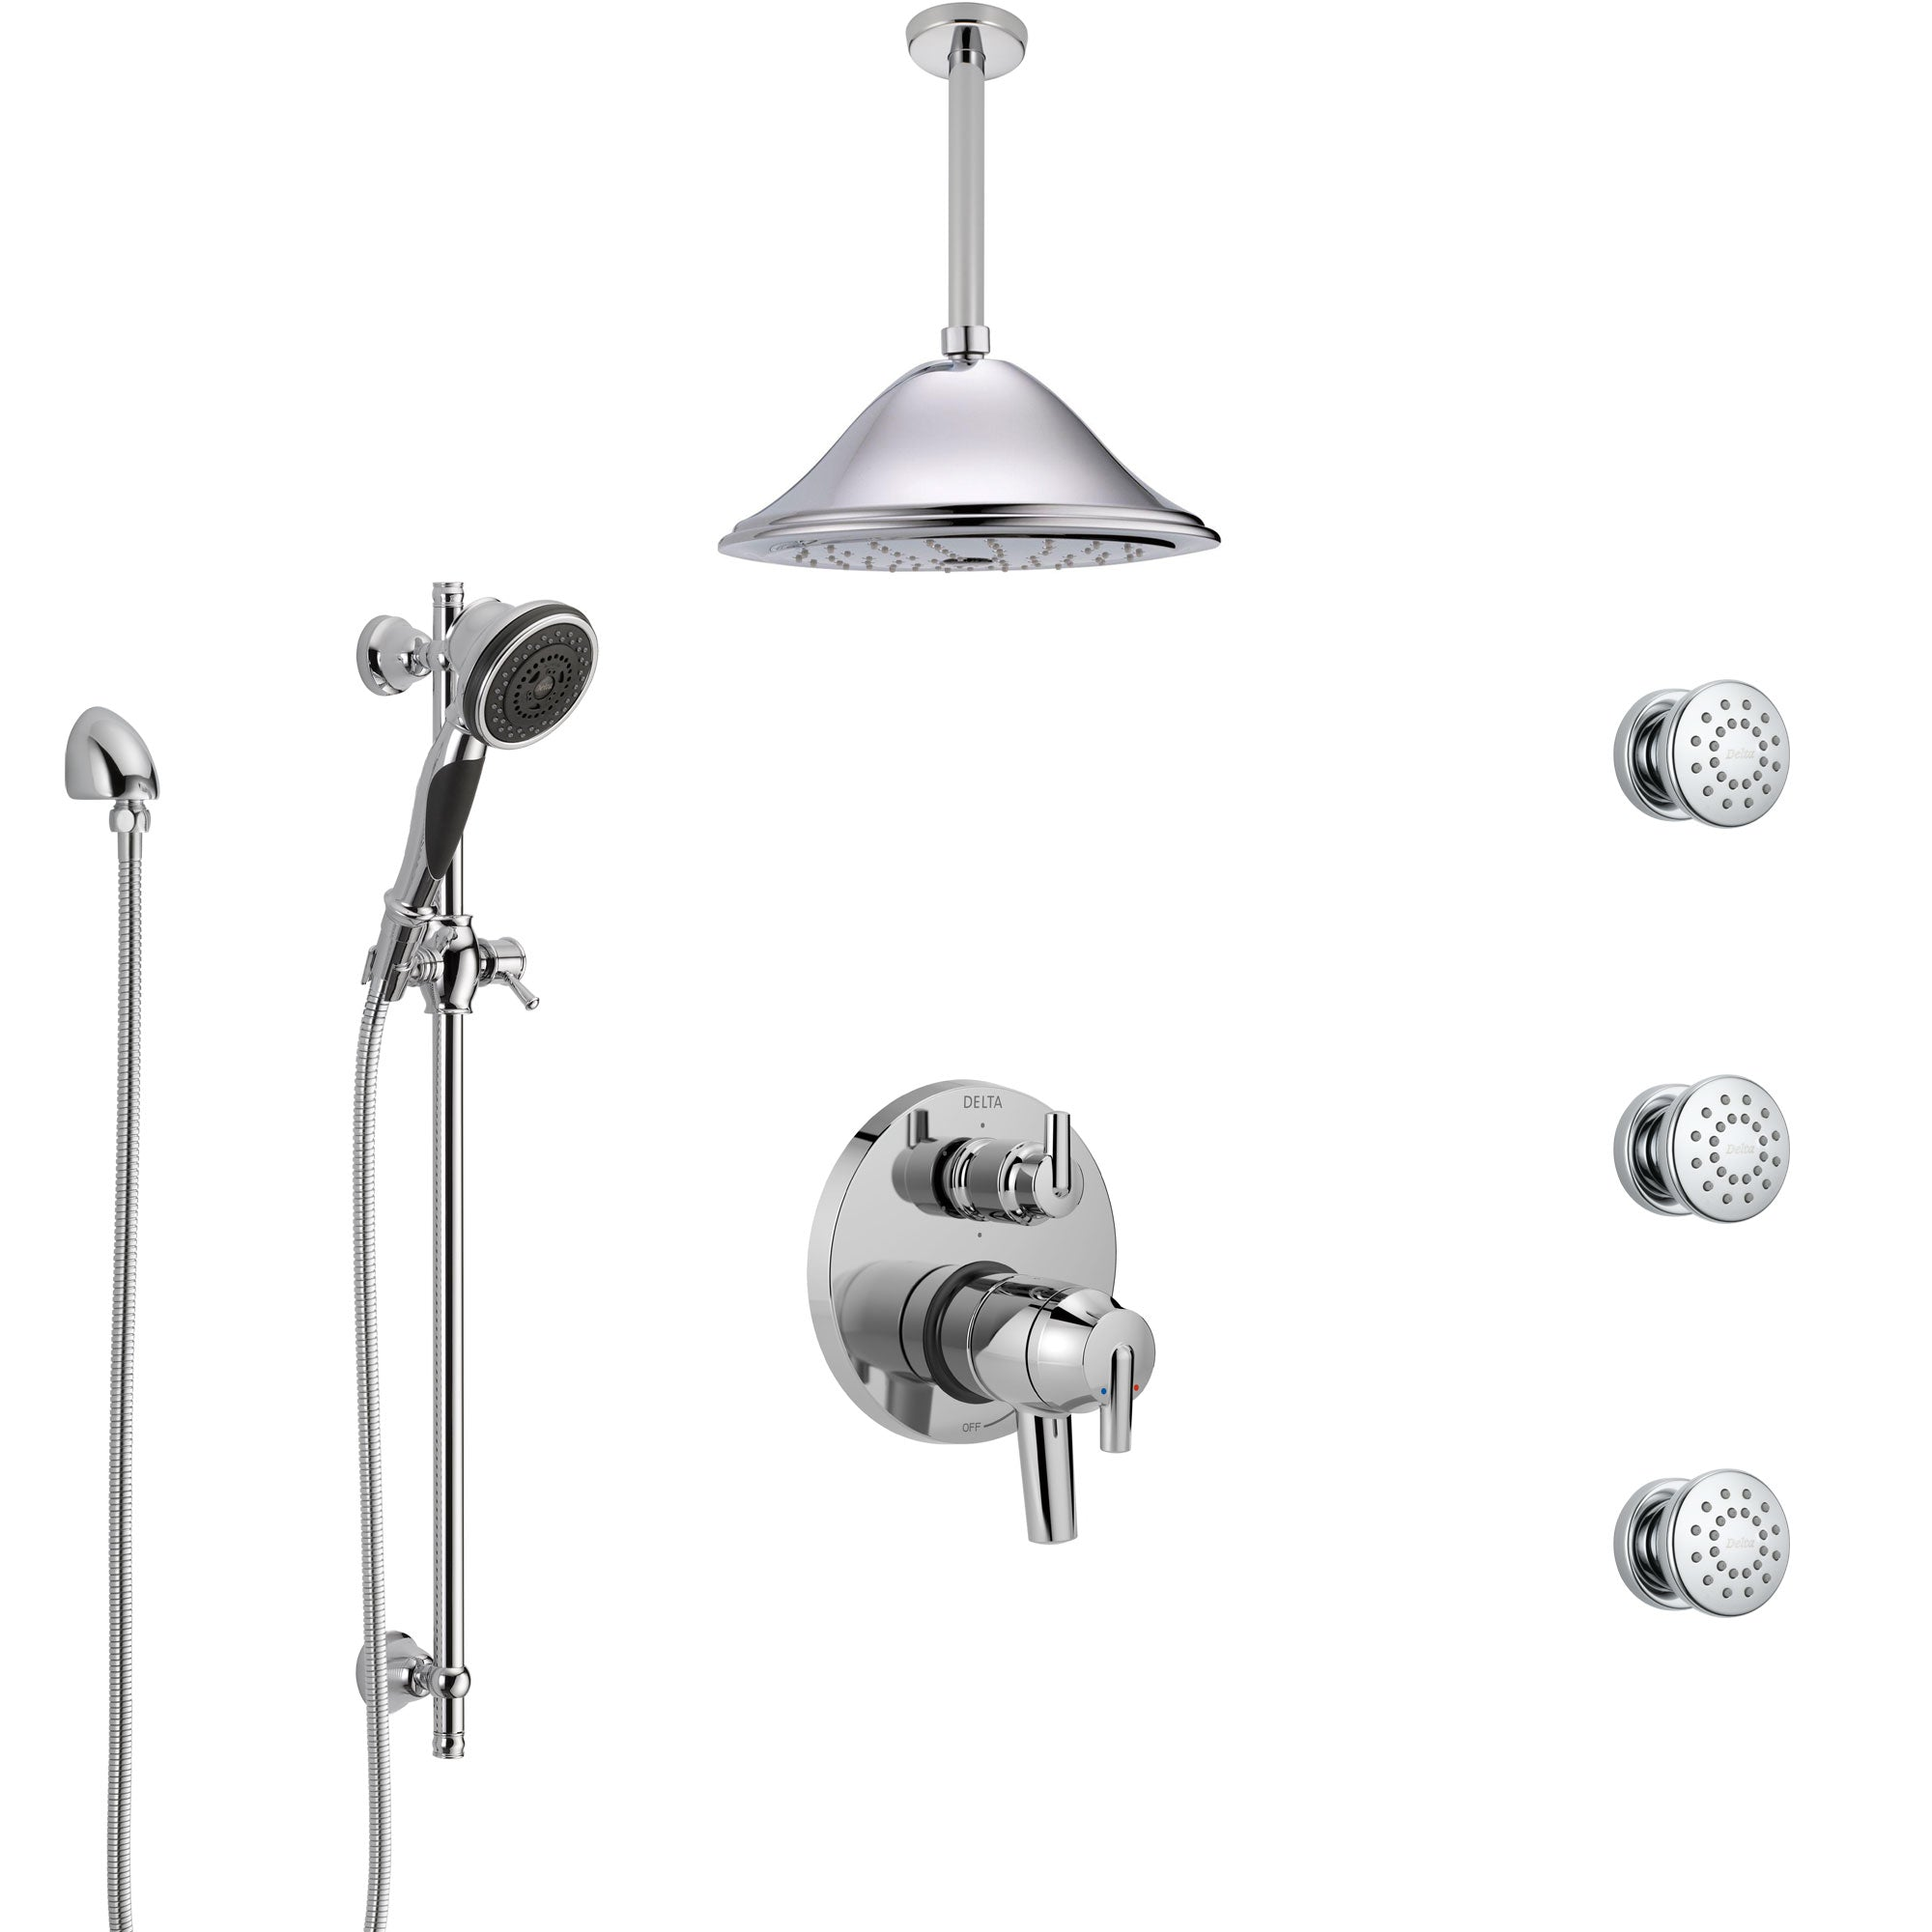 Delta Trinsic Chrome Shower System with Dual Control Handle, Integrated Diverter, Ceiling Mount Showerhead, 3 Body Sprays, and Hand Shower SS279598